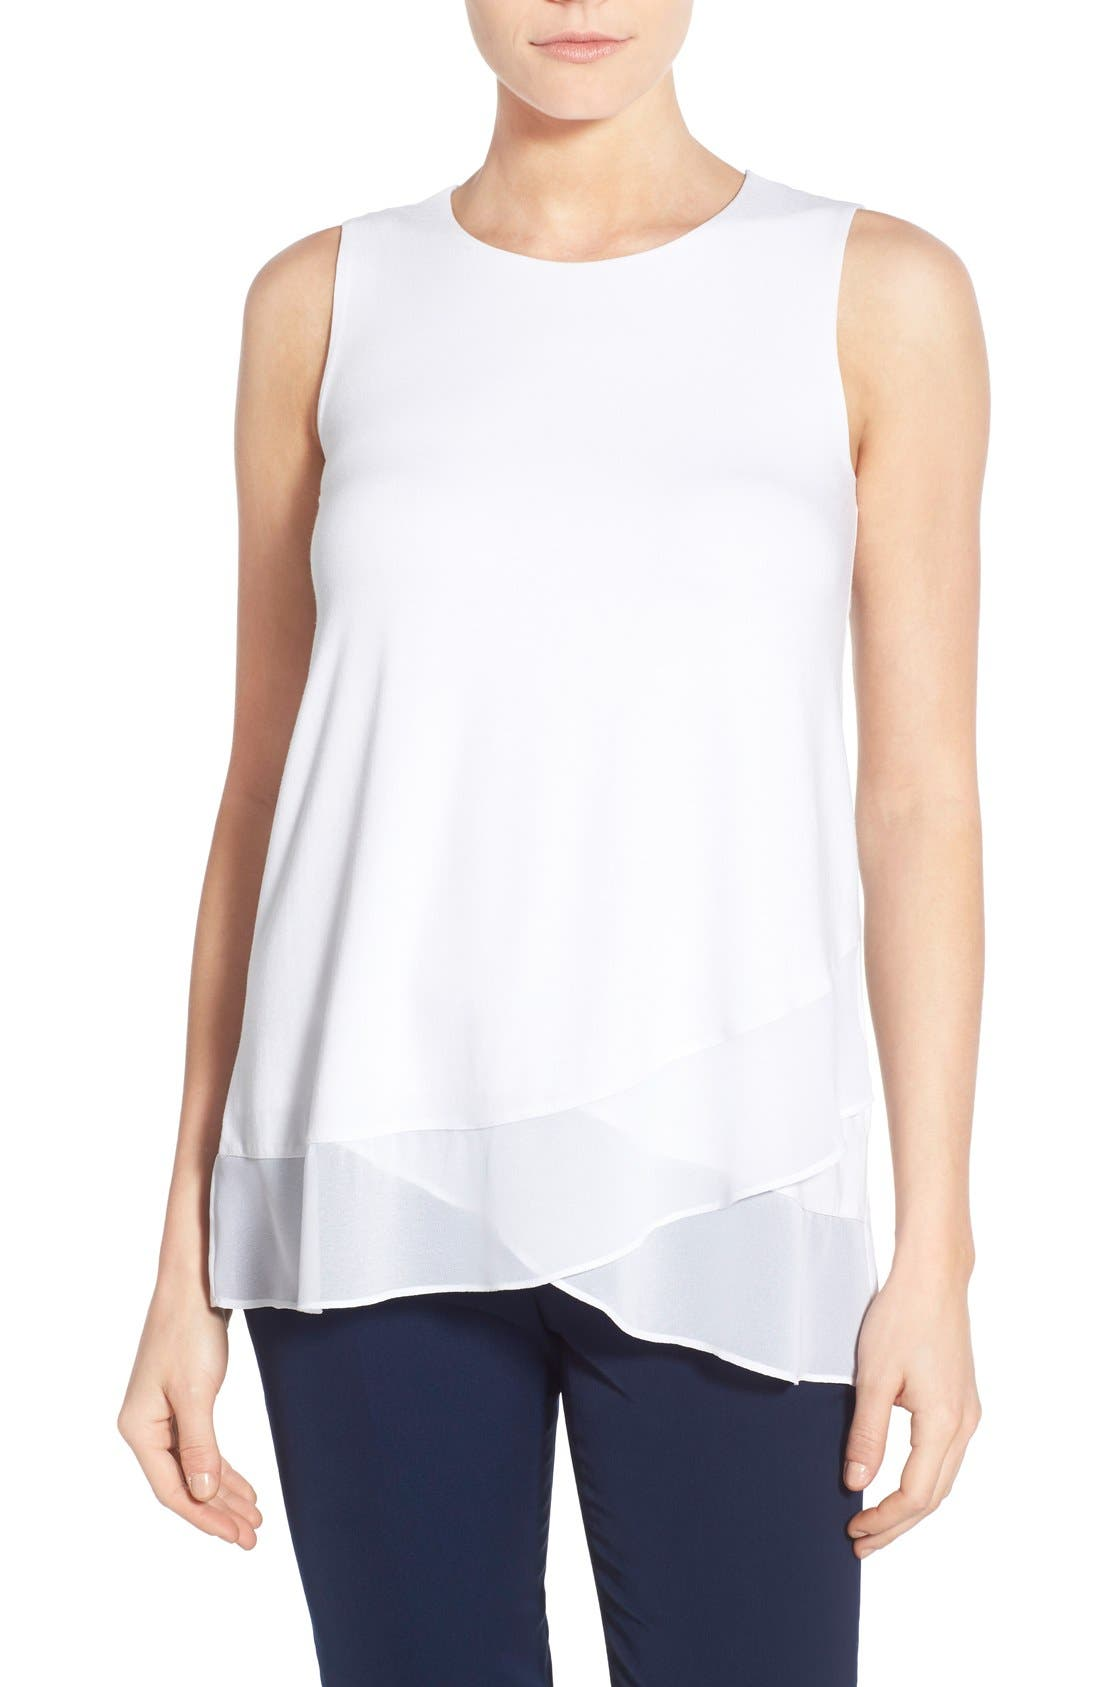 Alternate Image 1 Selected - Vince Camuto Sleeveless Top with Asymmetrical Chiffon Hem